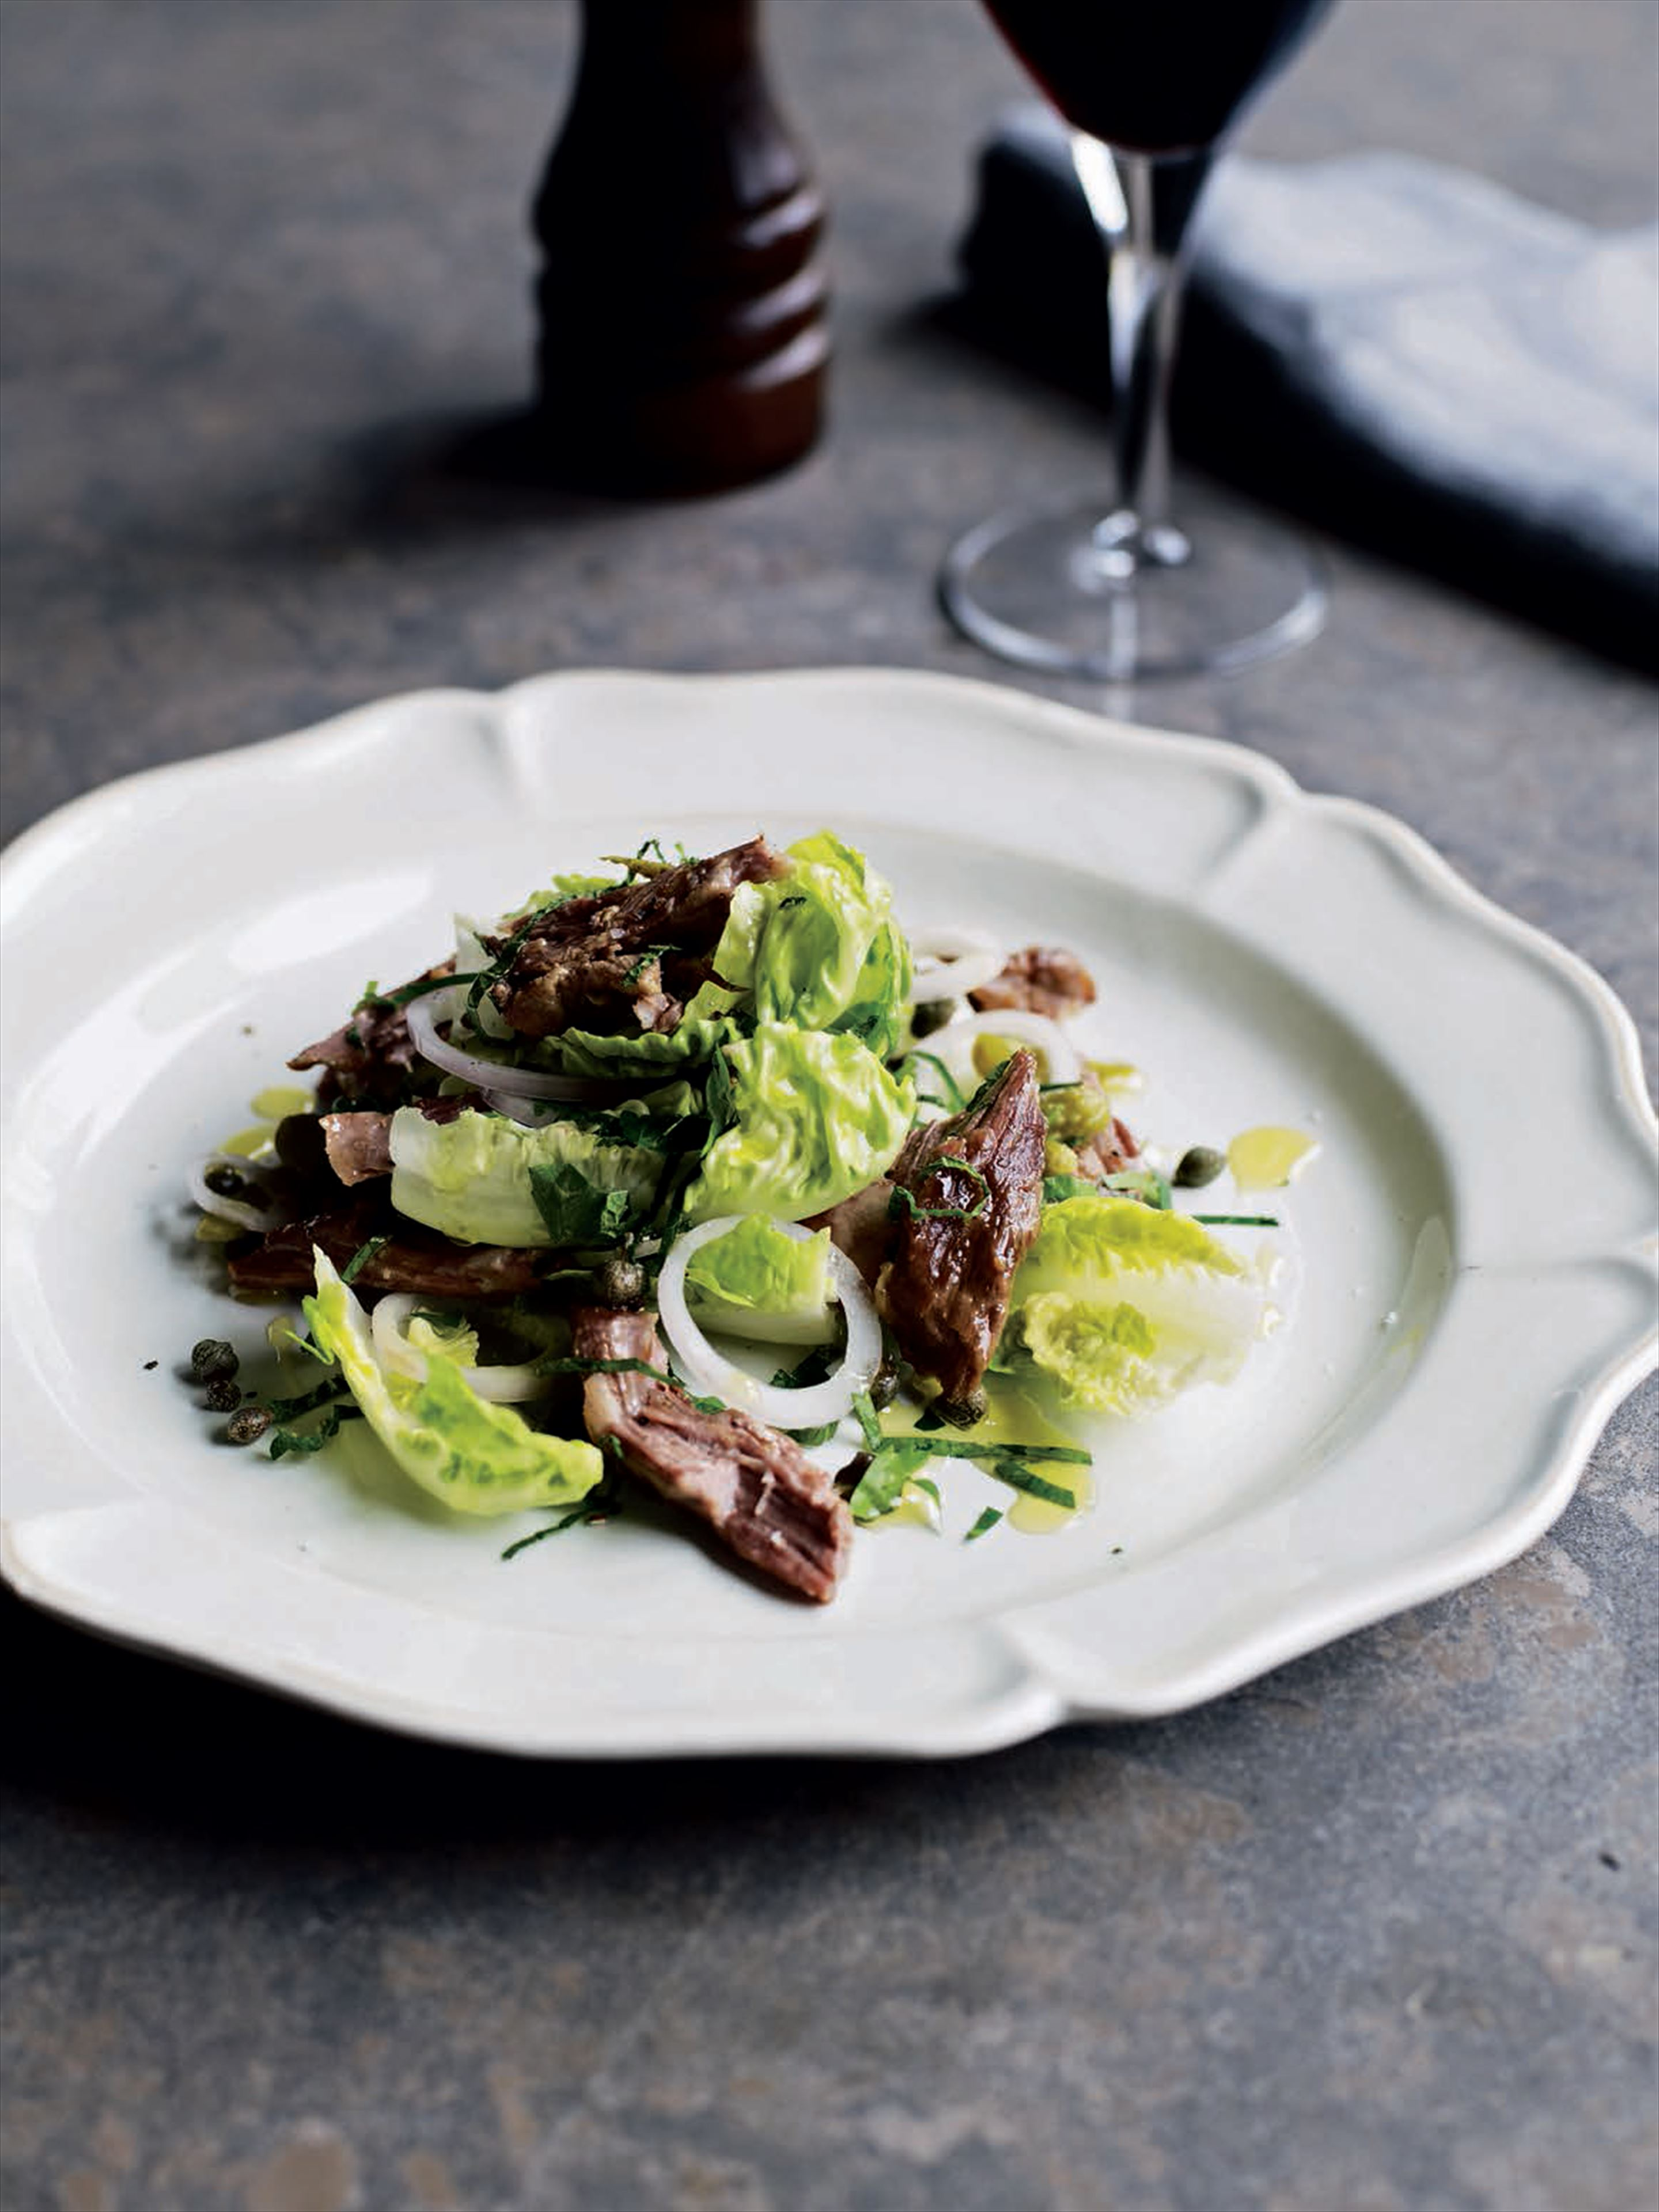 Confit lamb salad with capers and gherkins